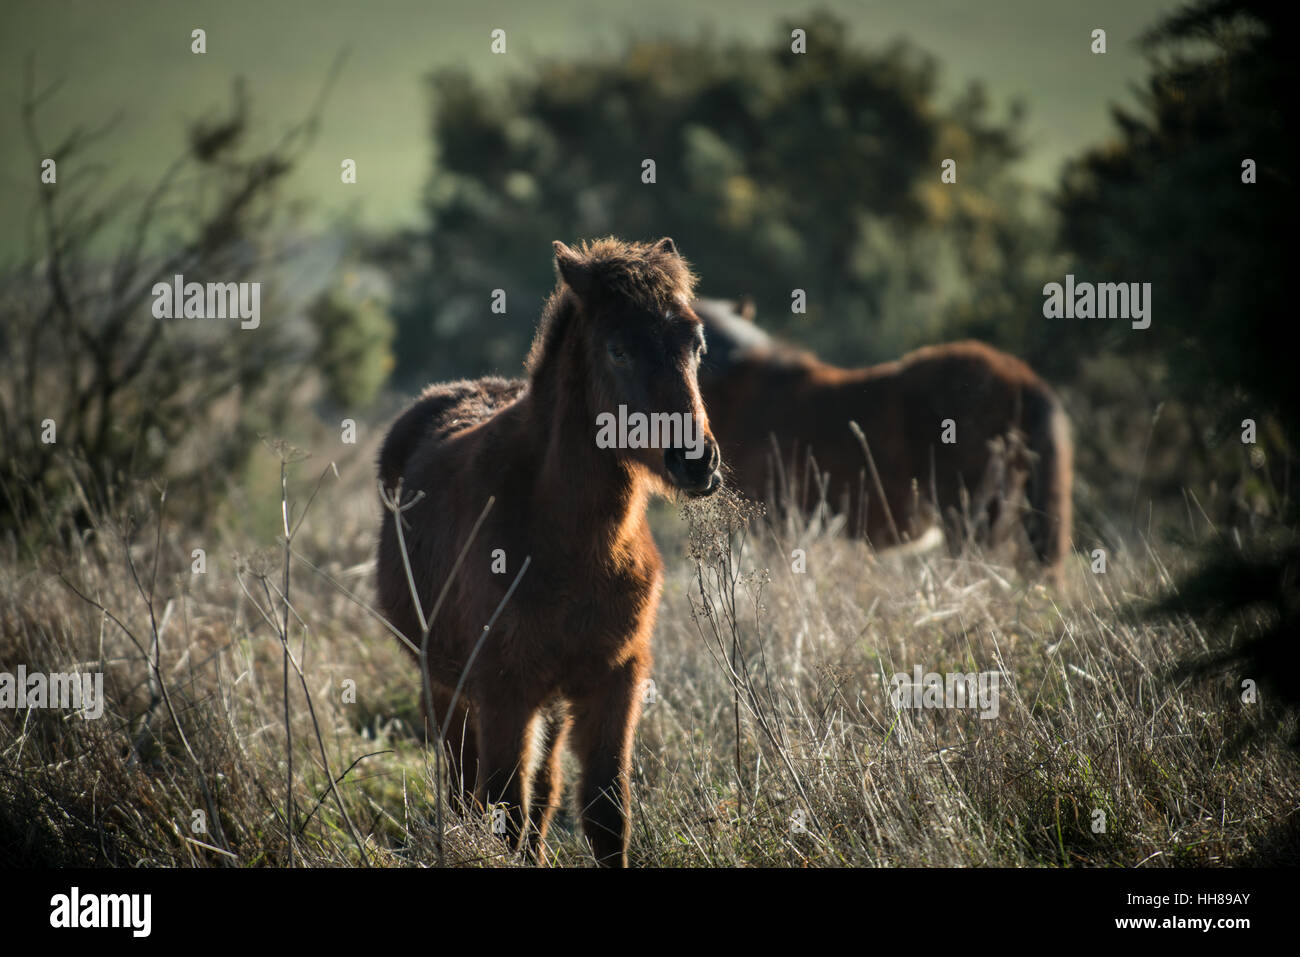 A pony at Cissbury Ring in the South Downs National Park, West Sussex, England. - Stock Image